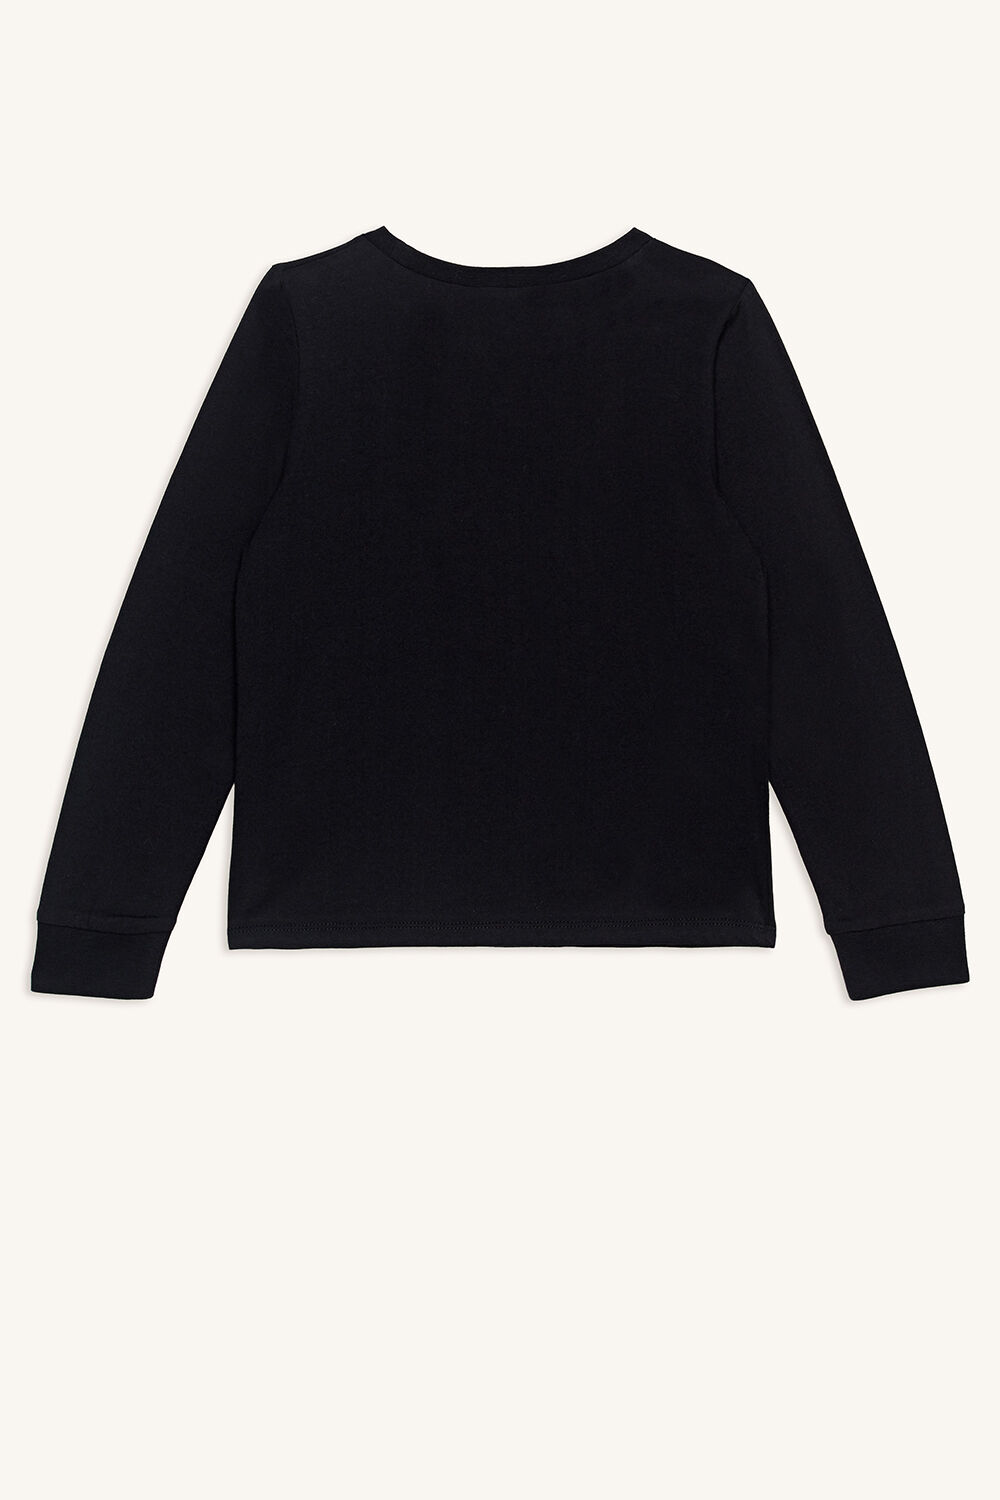 ELECTRIC L/S TEE in colour JET BLACK